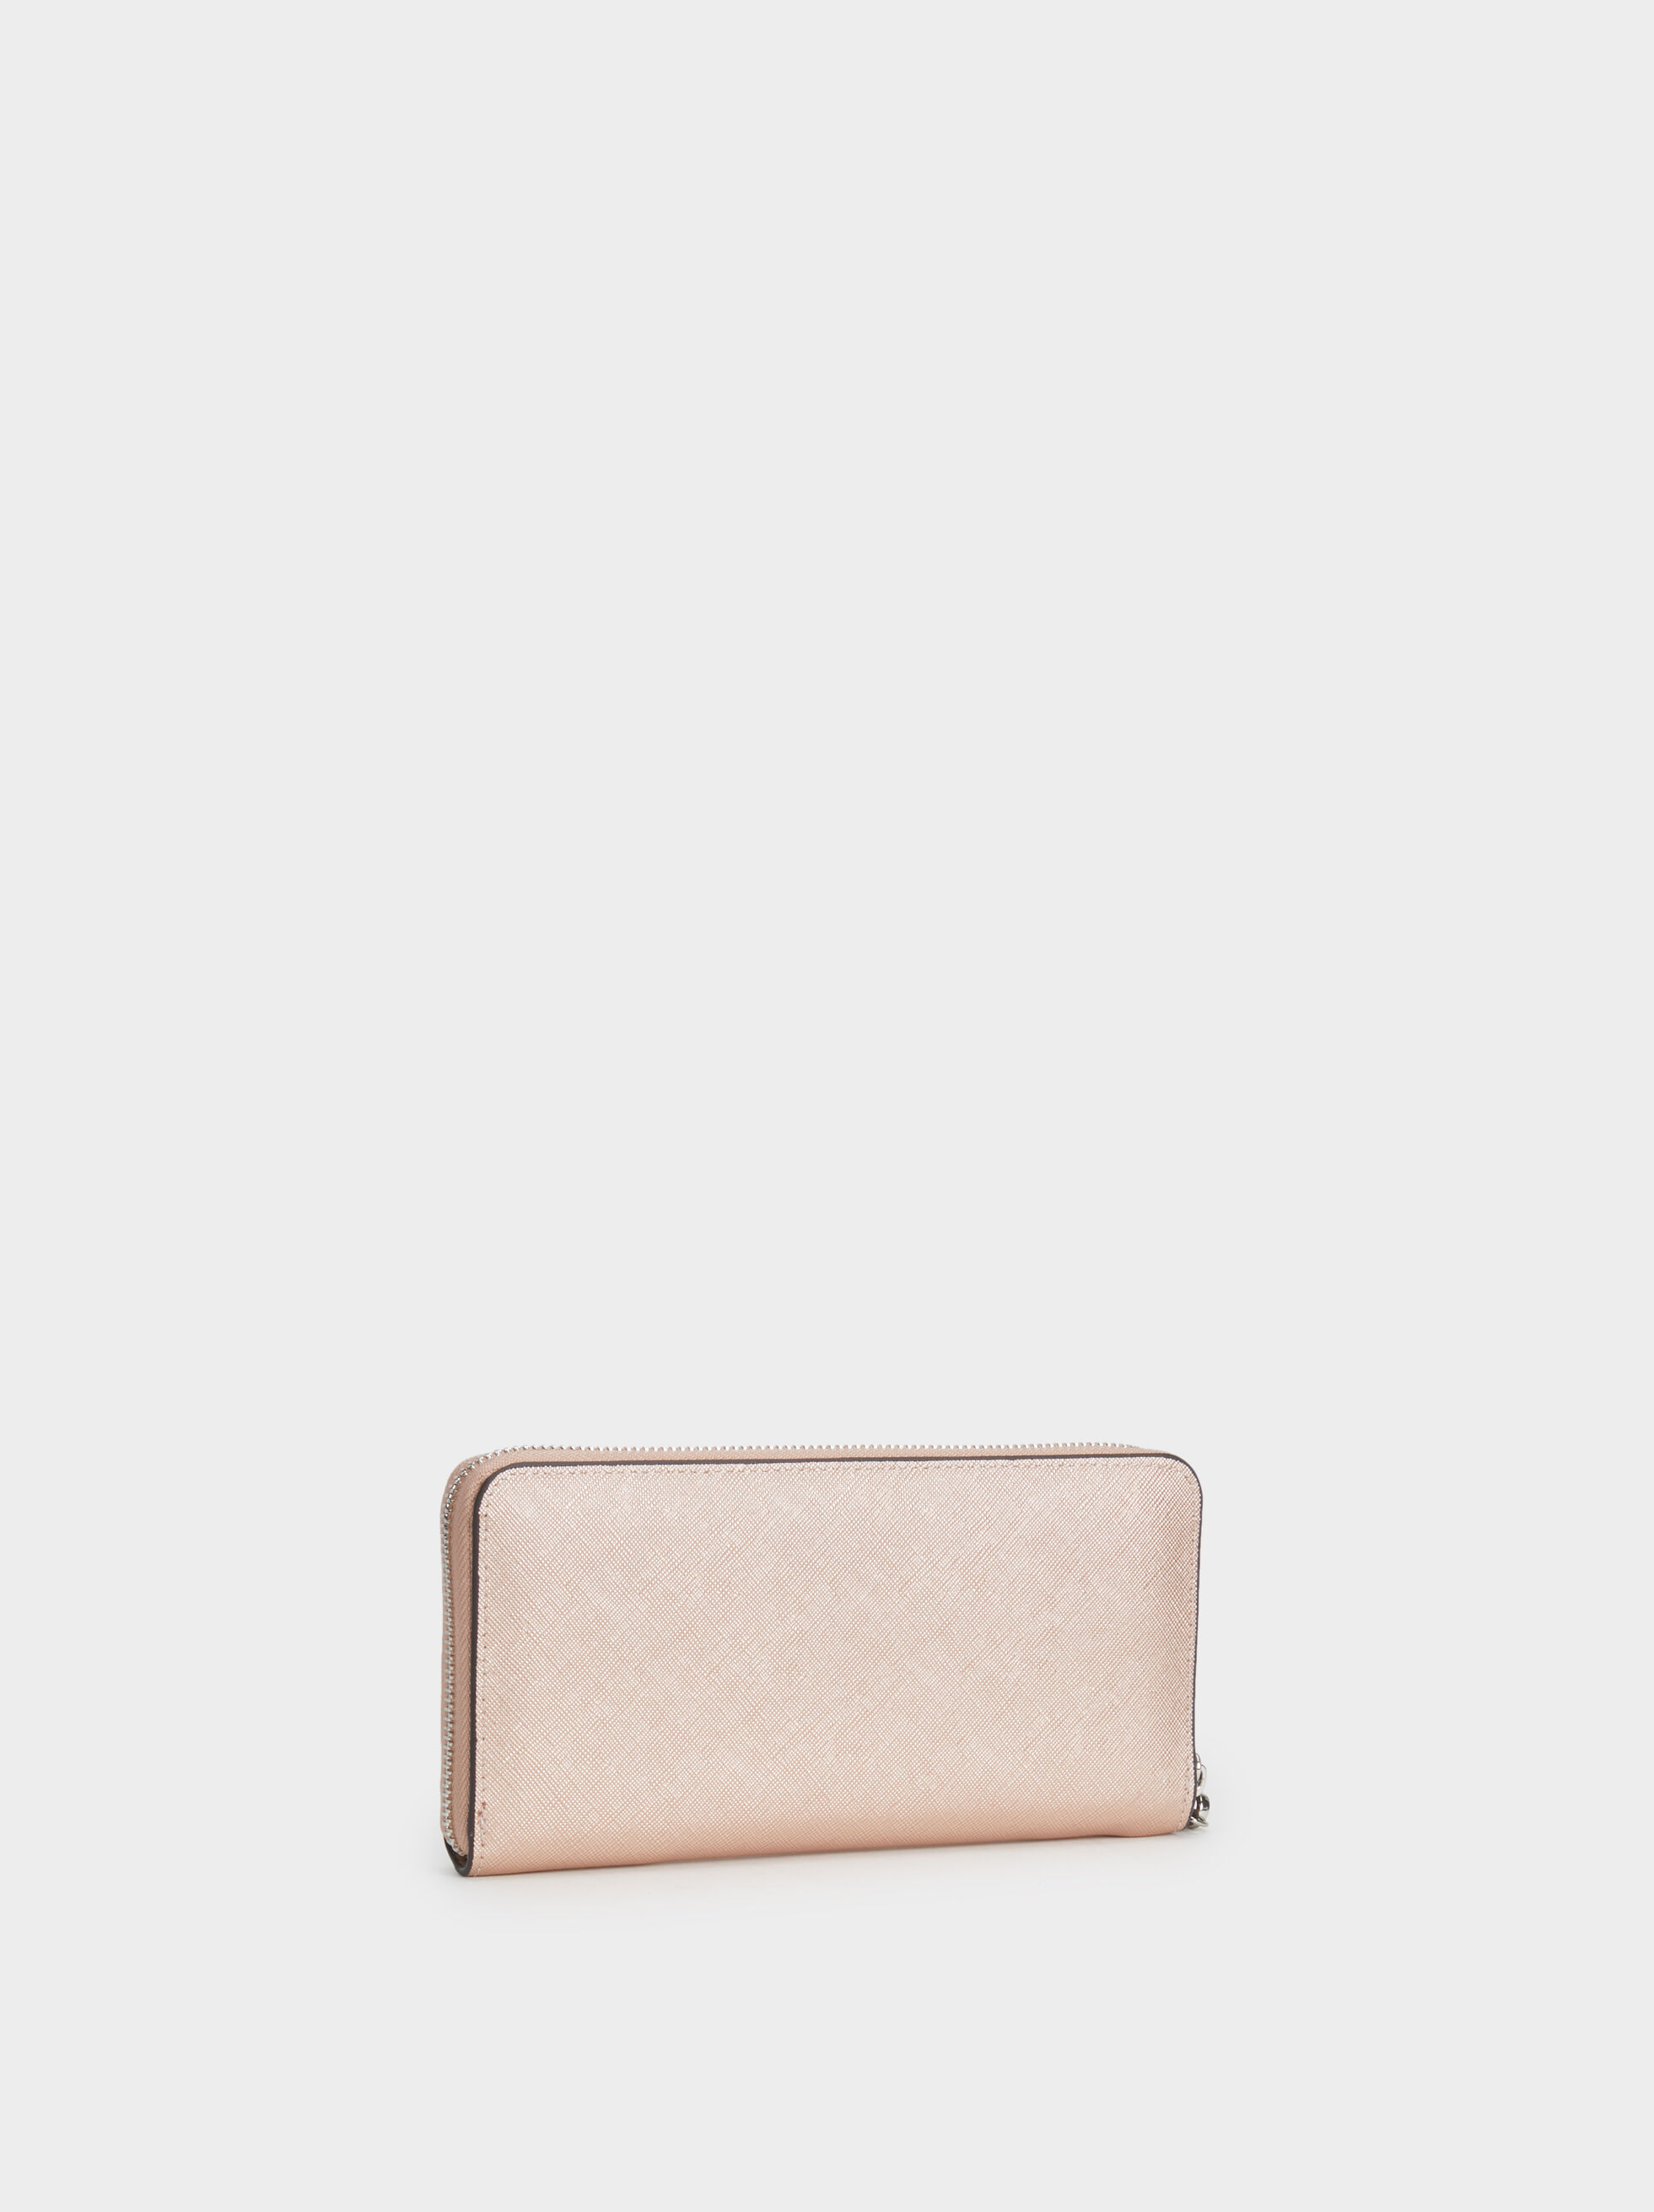 Large Wallet With Handle, Orange, hi-res